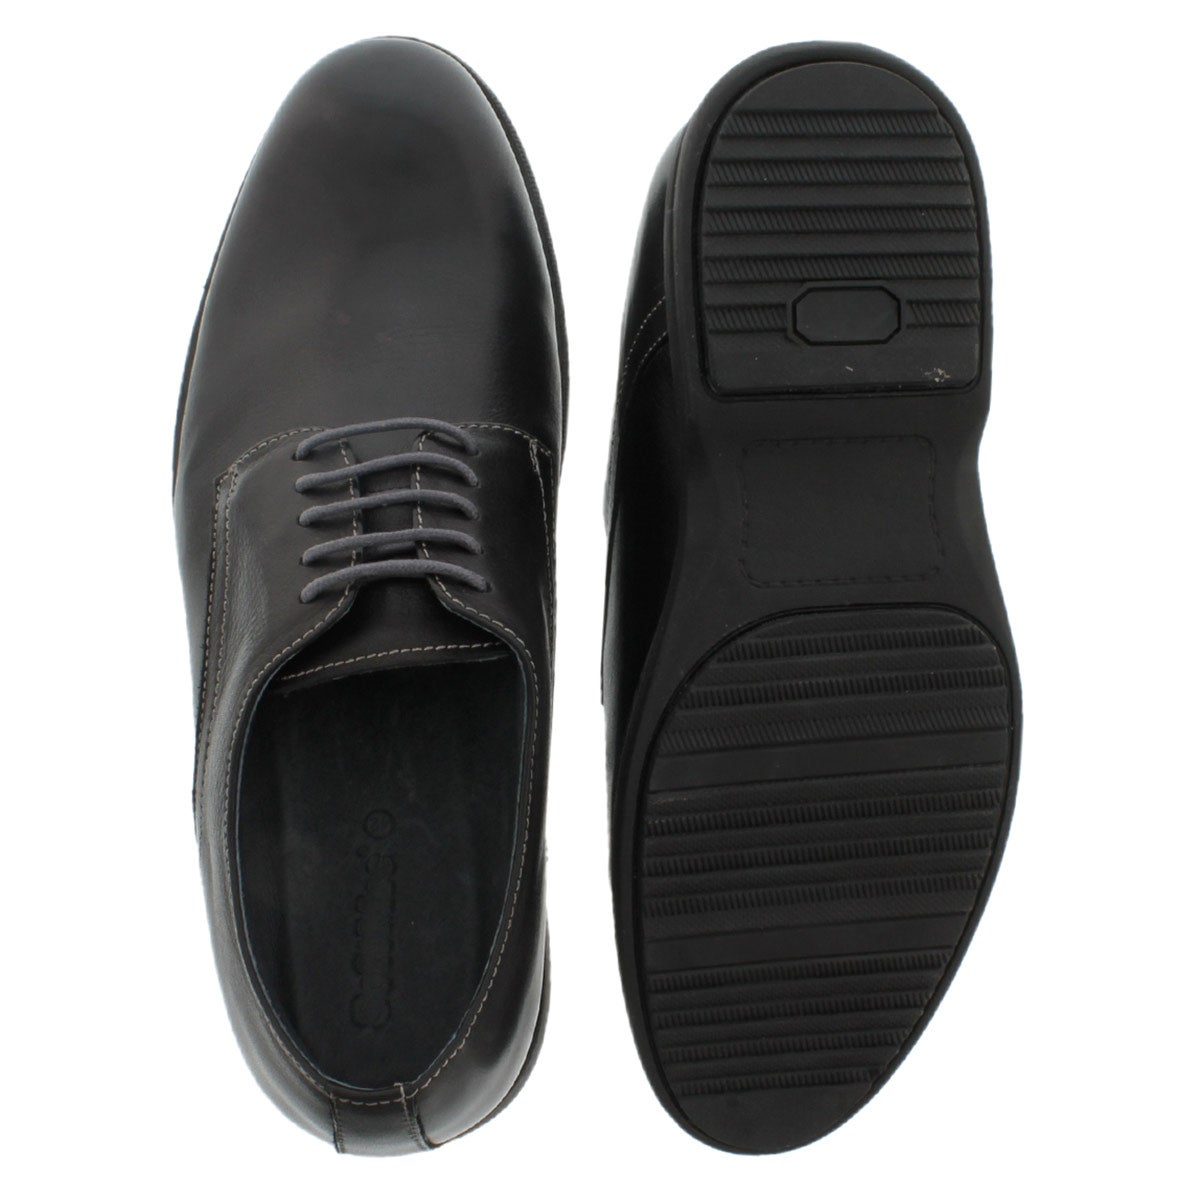 Mns Motor black 5-eye oxford dress shoe